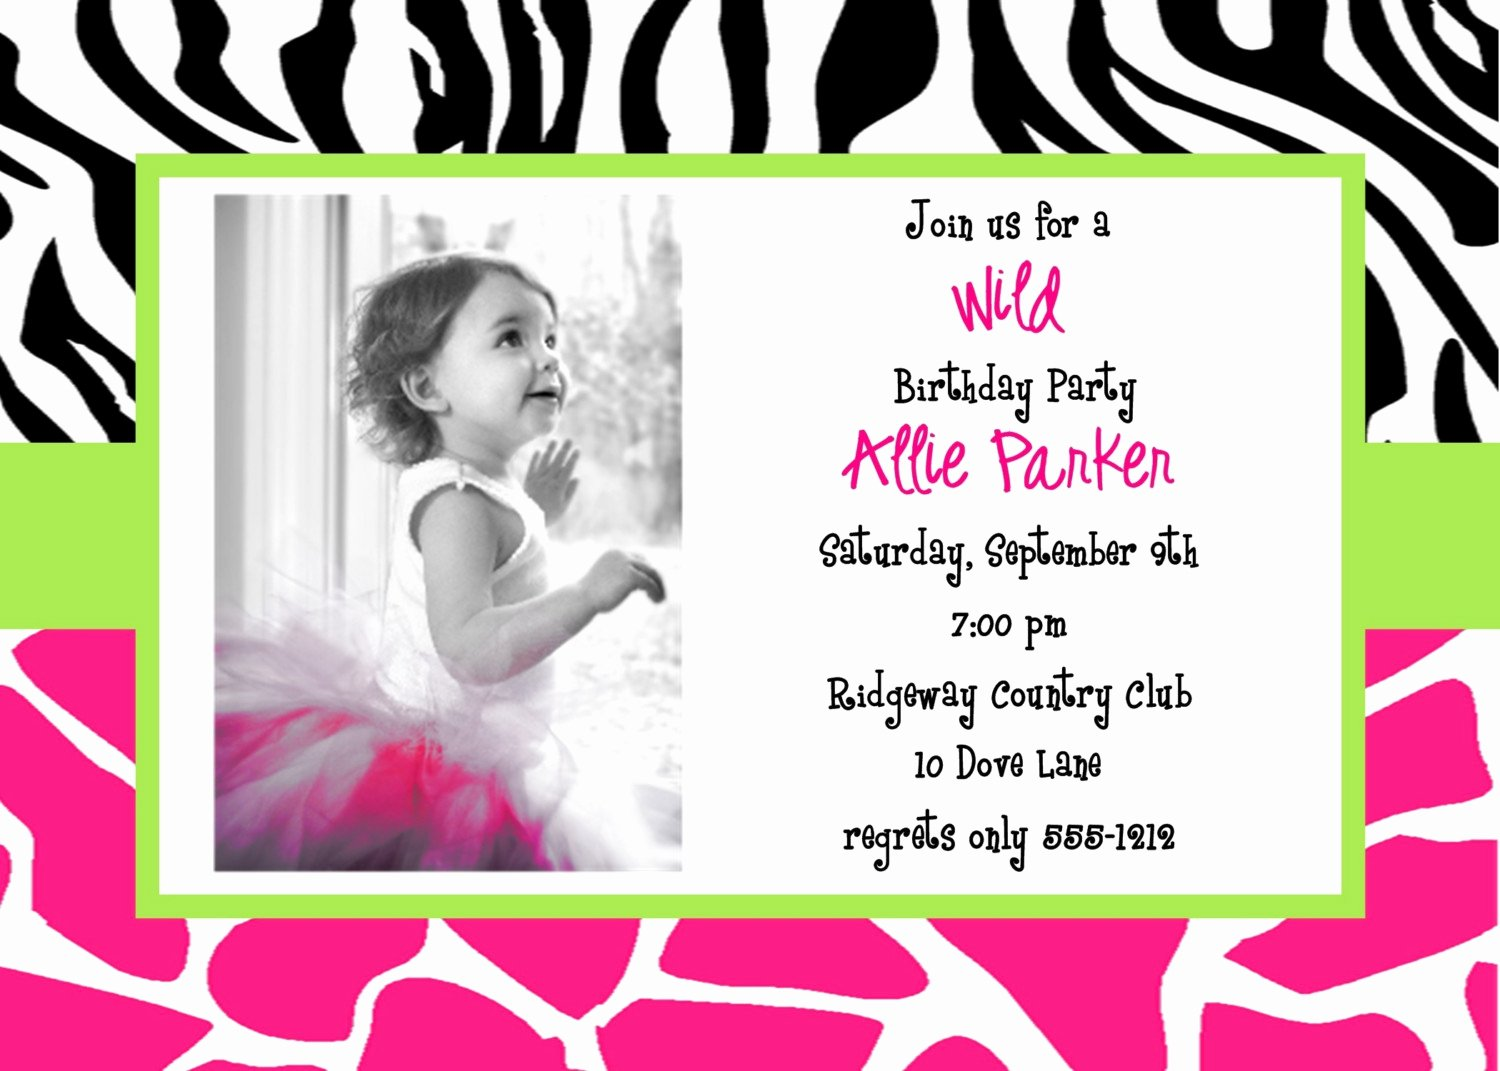 Free Printable Anniversary Invitations Lovely How to Choose the Best E Free Printable Birthday Invitation Templates Free Invitation